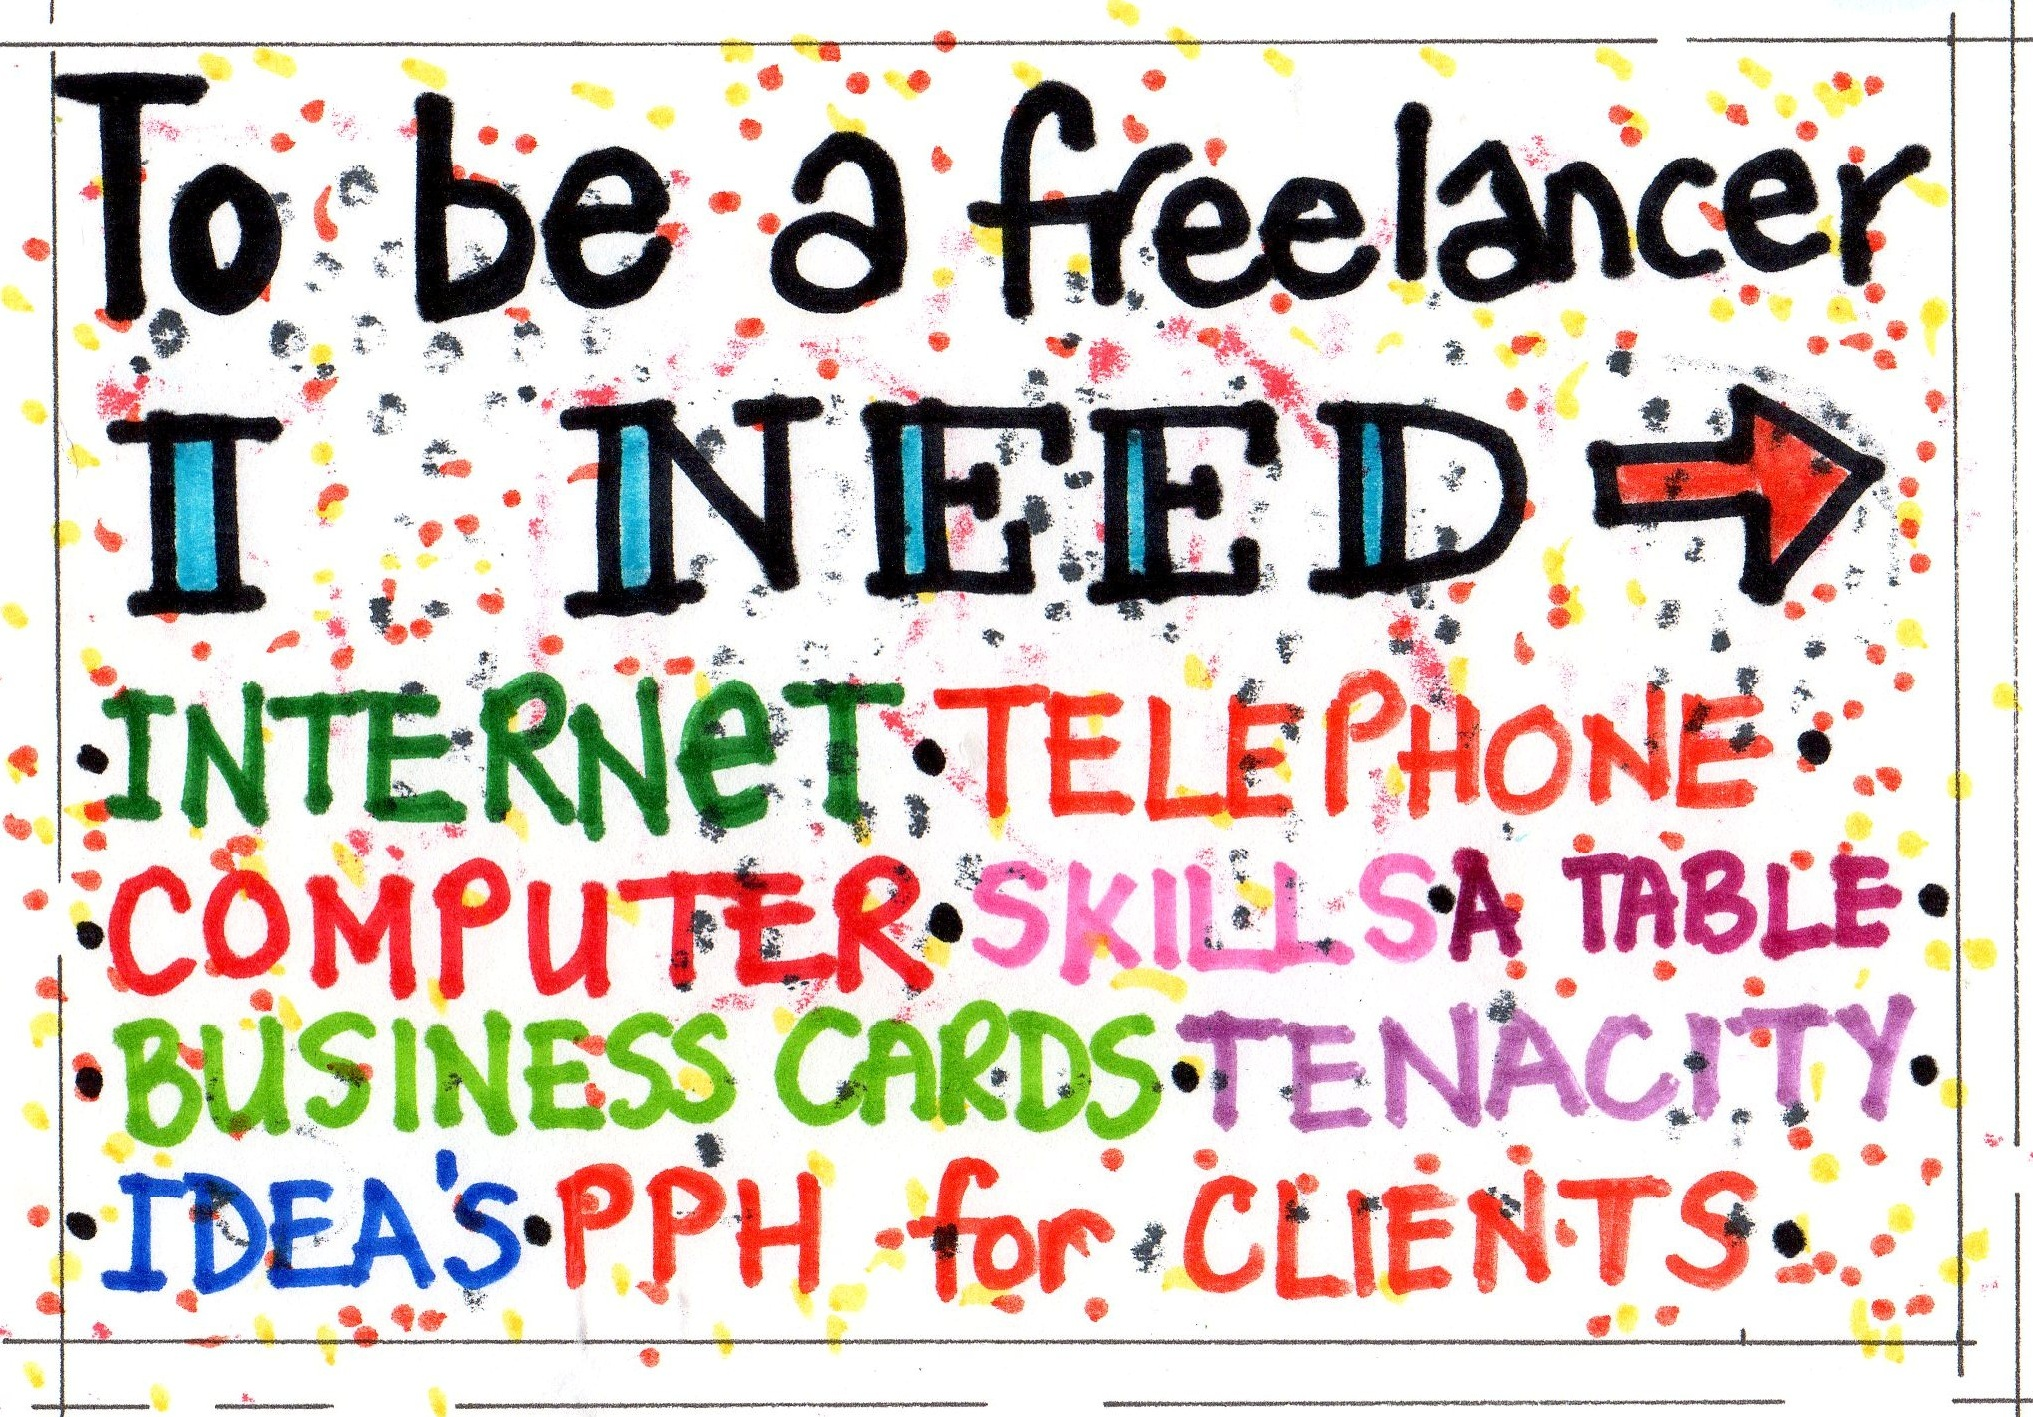 Tools Needed by freelancers